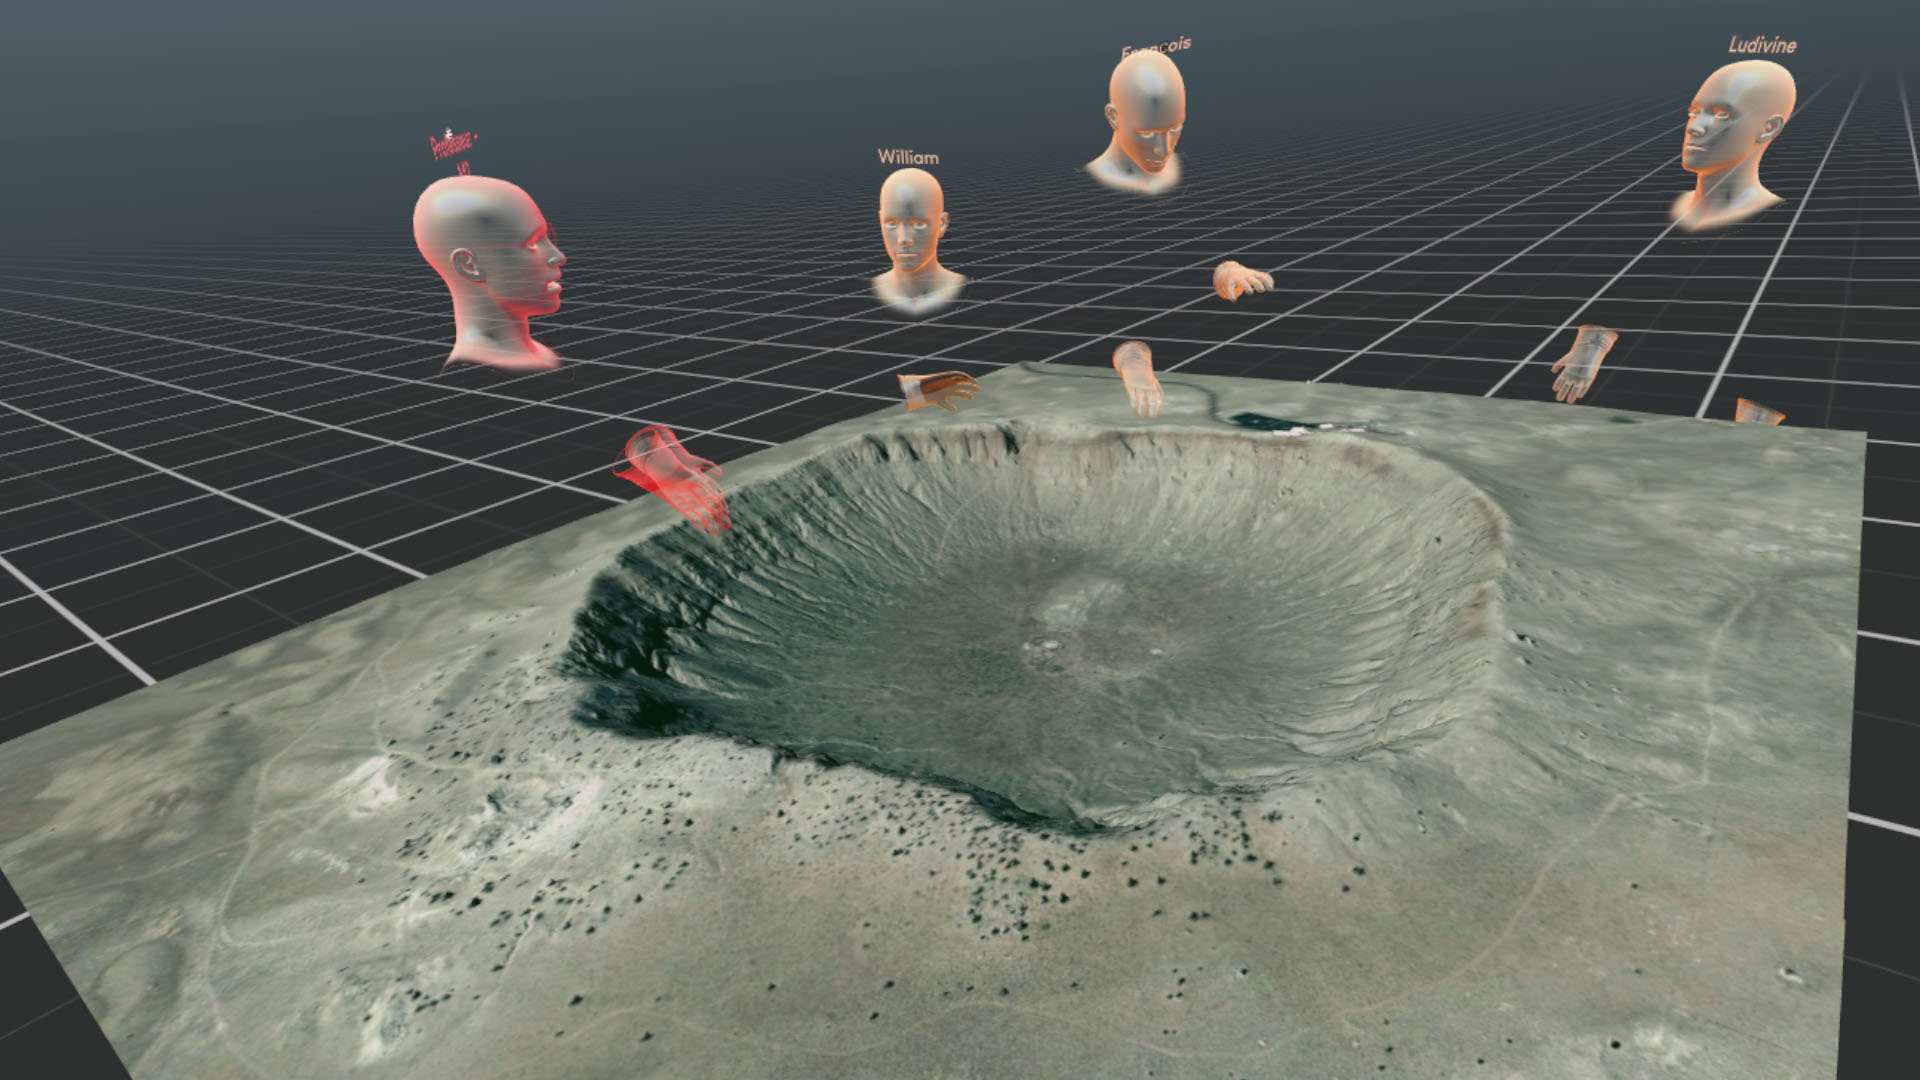 """Geology course in virtual reality: the teacher and the students communicate and interact around the 3D model of Meteor Crater (Arizona) to discuss geological processes (software developed by VR2Planets) """"- Image credit: VR2Planets"""